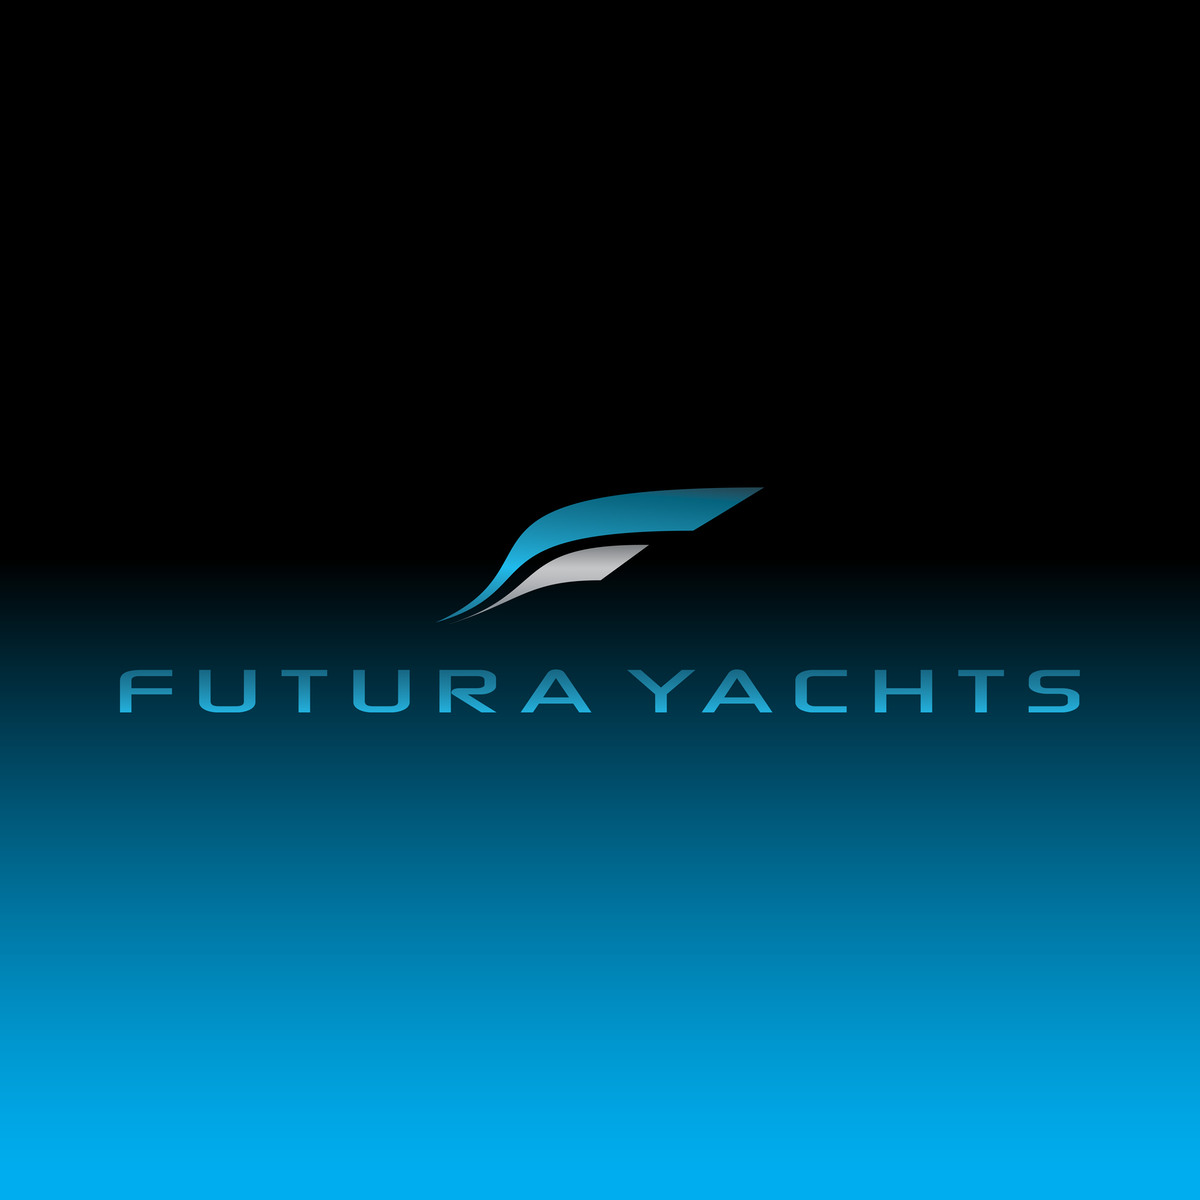 Futurayachts logo contest with winning boat tour in the Netherlands for a day!